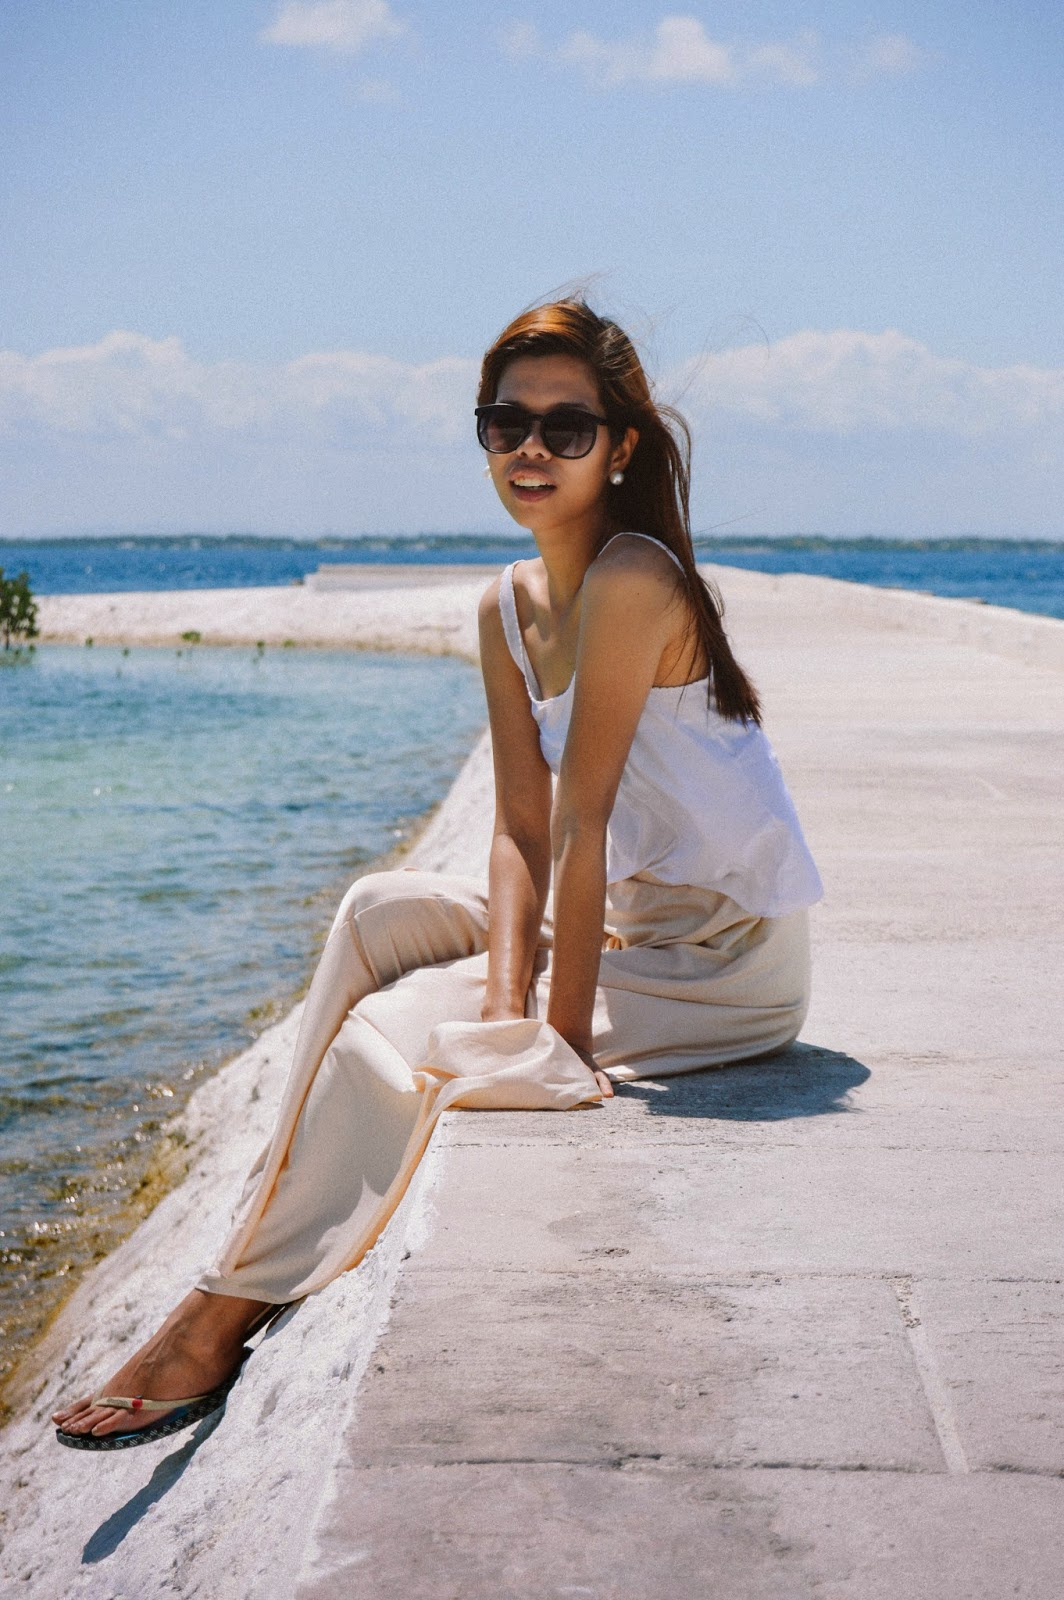 summer breeze, chill summer, summer, chill, Costabella Beach Resort, How to edit instagram photos, fashion blogger, style blogger, cebu blogger, cebu style blogger, blogger, filipina blogger, cebuana blogger, nested thoughts, katherine cutar, katherine anne cutar, katherineanika, katherine annika, ootd, ootd pilipinas, summer 2015, philippines summer 2015, philippines summer, cebu summer, cebu summer 2015, costabella cebu,